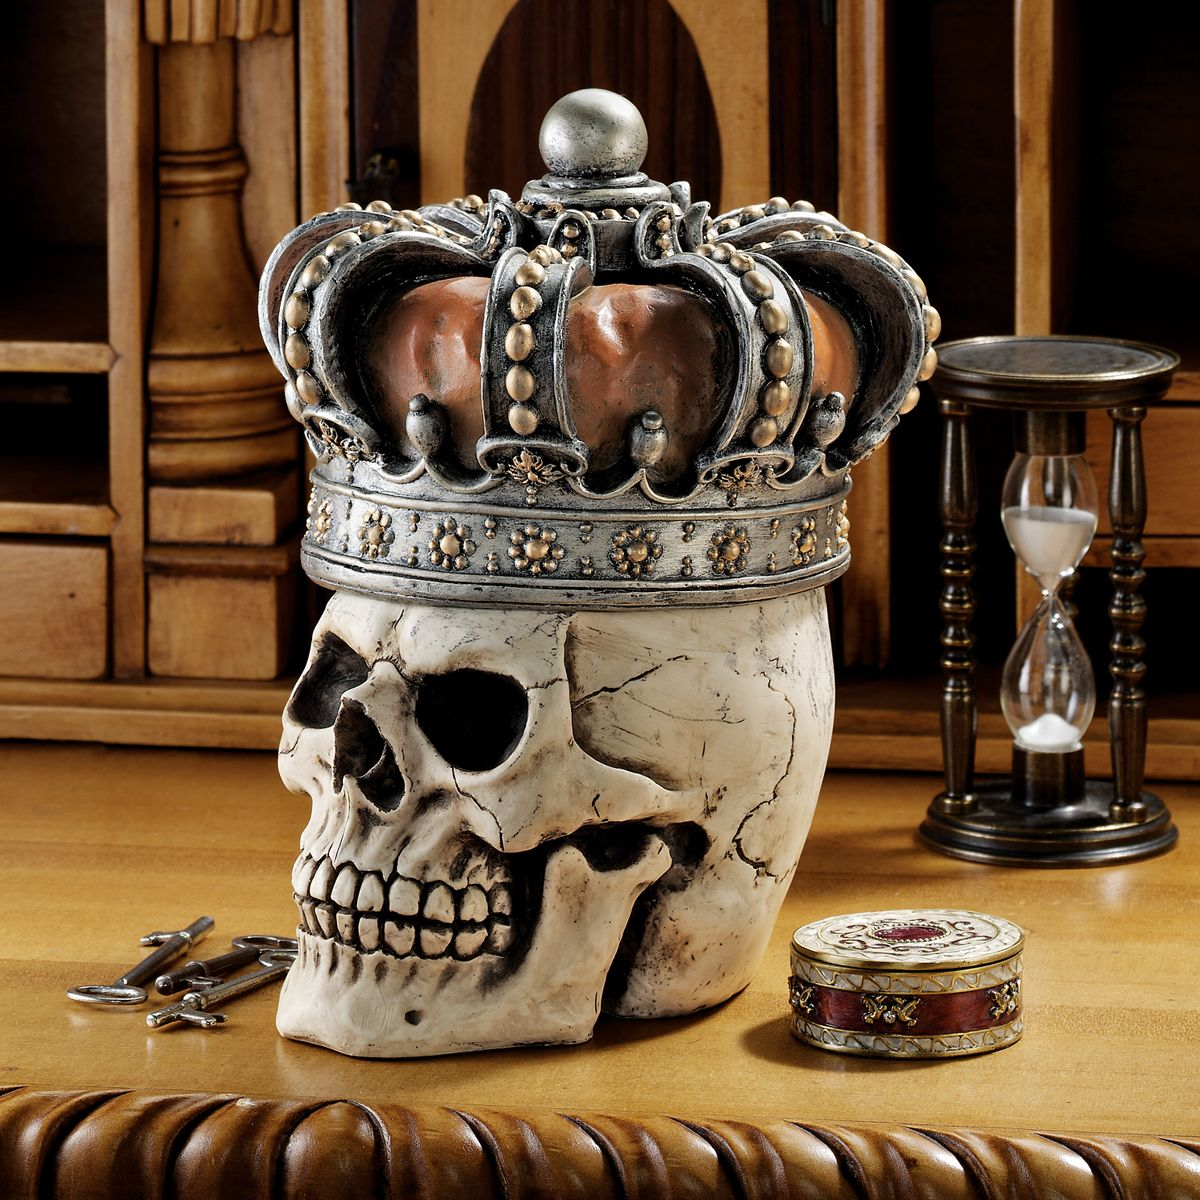 Pin By Karen Crawn On Home Decor: Hidden Treasures Removable Crown Gothic Skull King Crowned